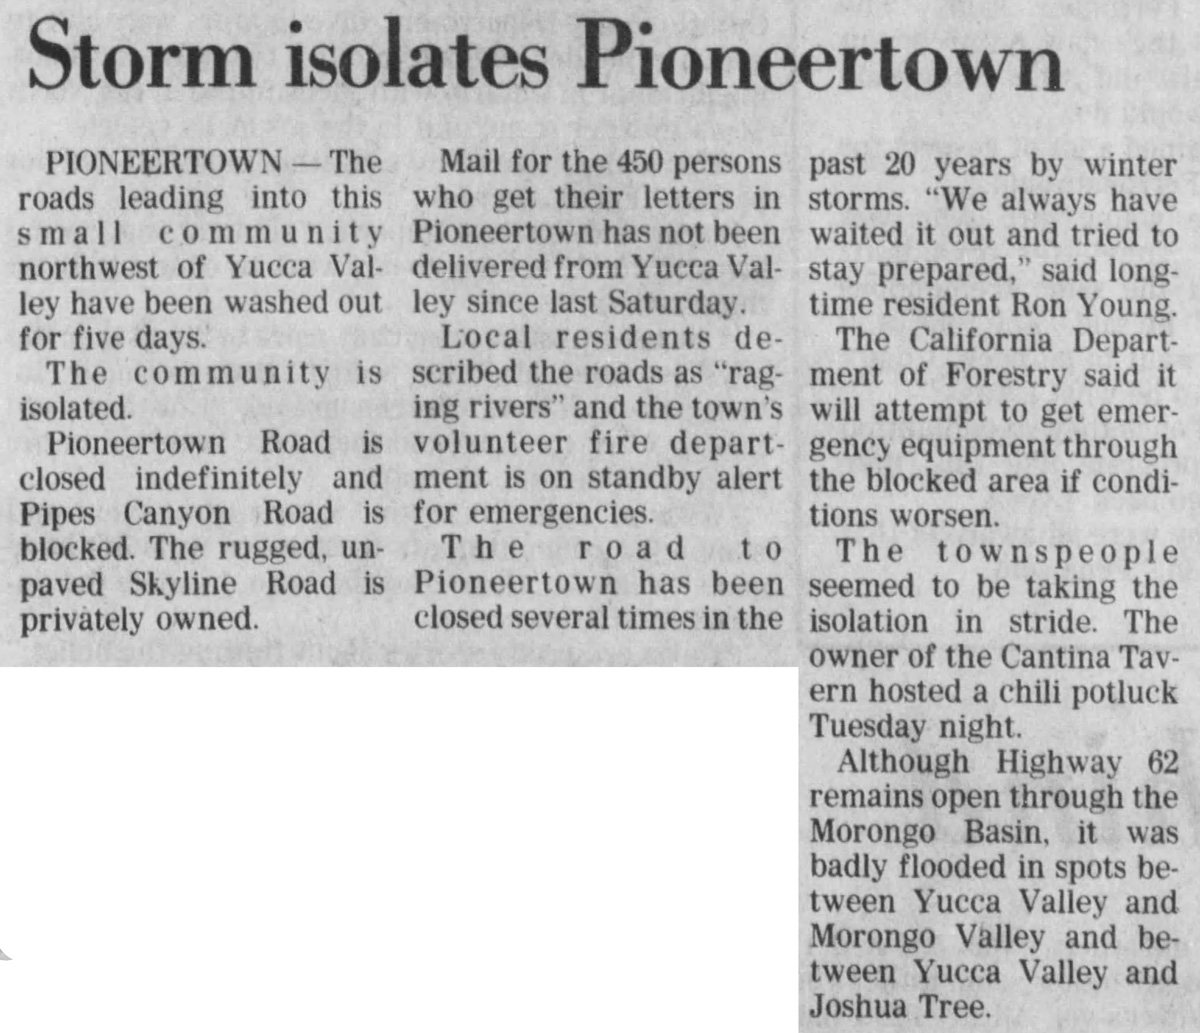 Feb. 21, 1980 - The San Bernardino County Sun article clipping